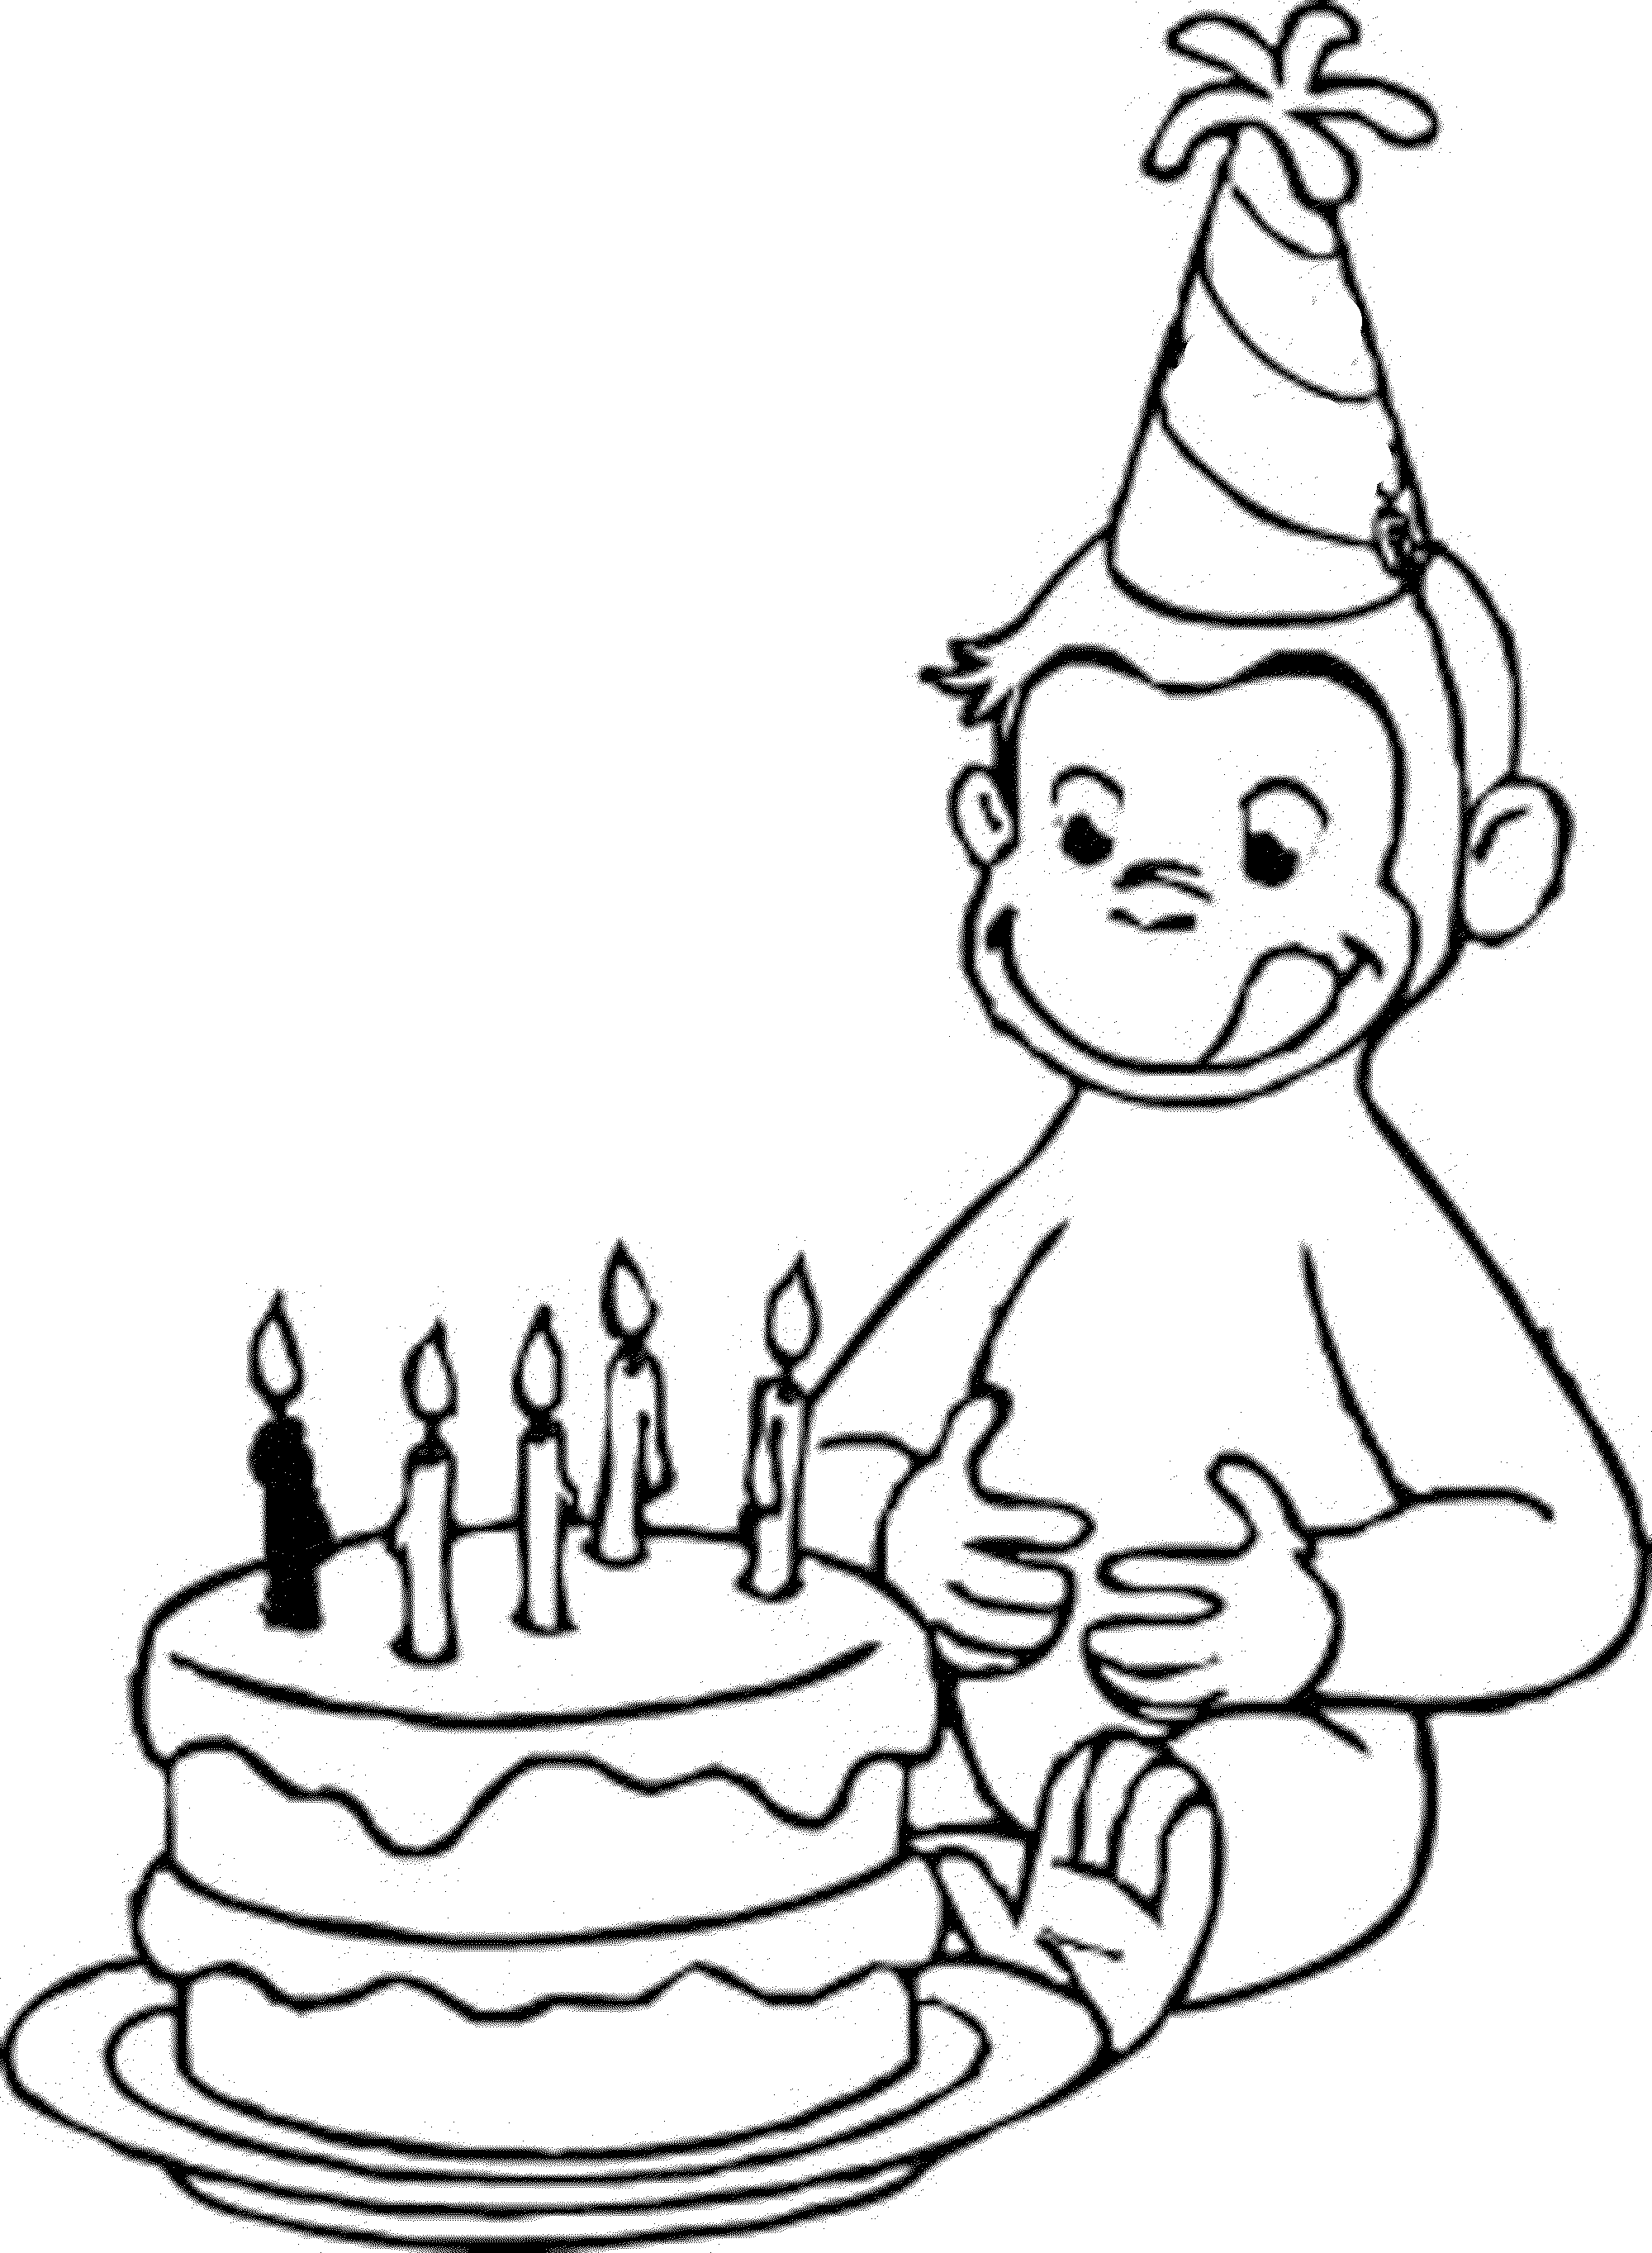 This is an image of Gutsy Curious George Printable Coloring Pages